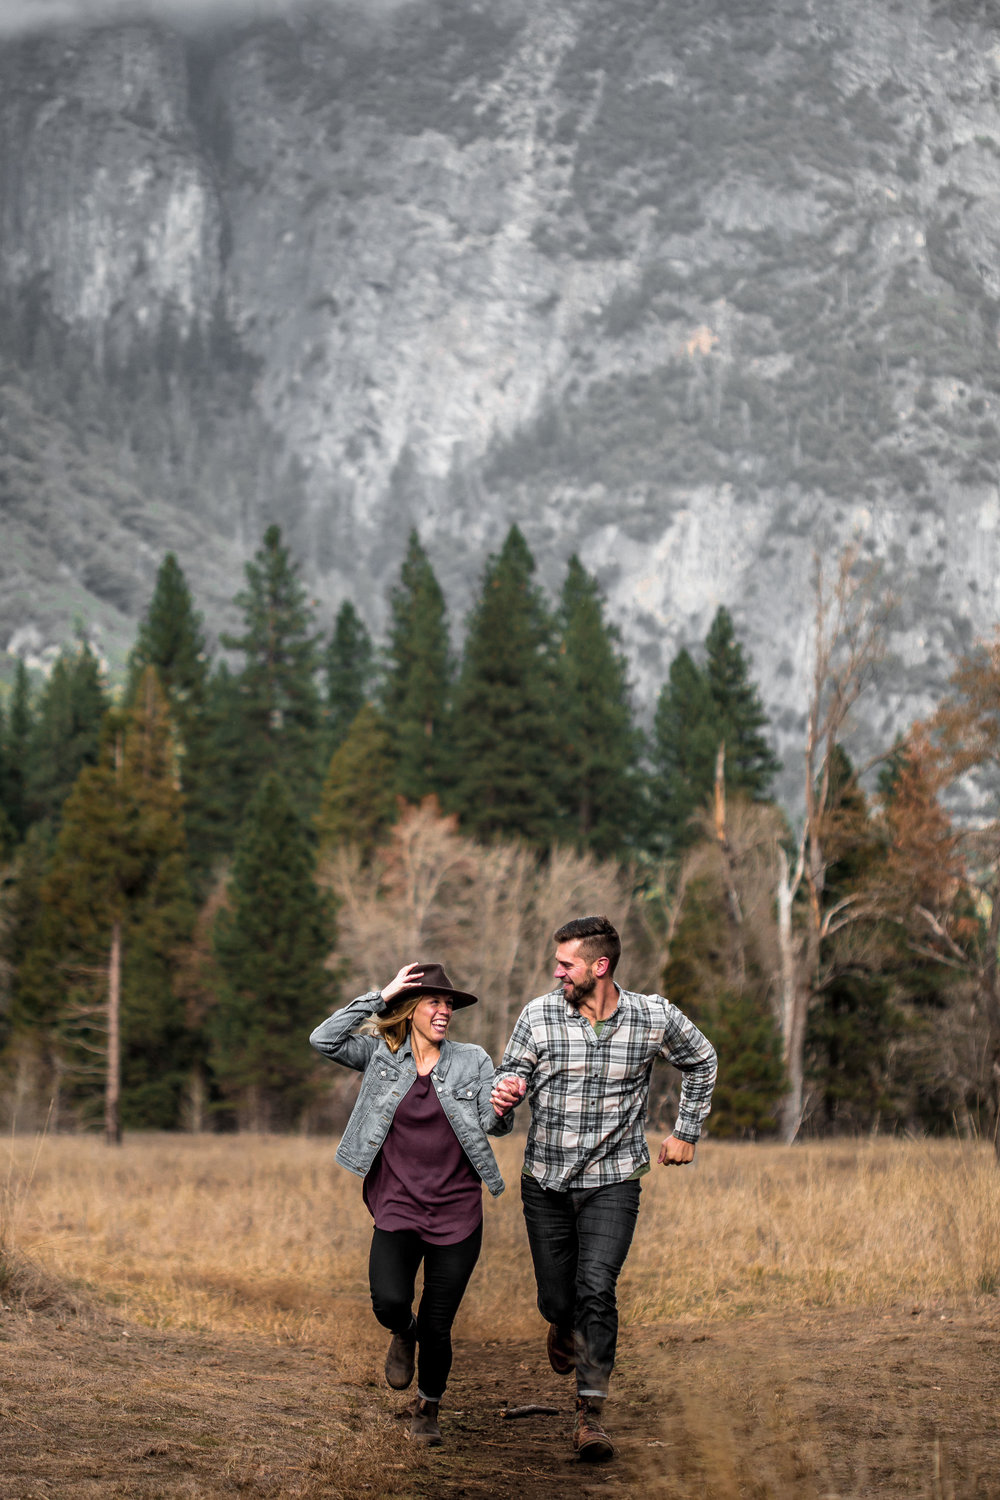 nicole-daacke-photography-yosemite-national-park-engagement-session-yosemite-valley-adventure-session-california-14.jpg